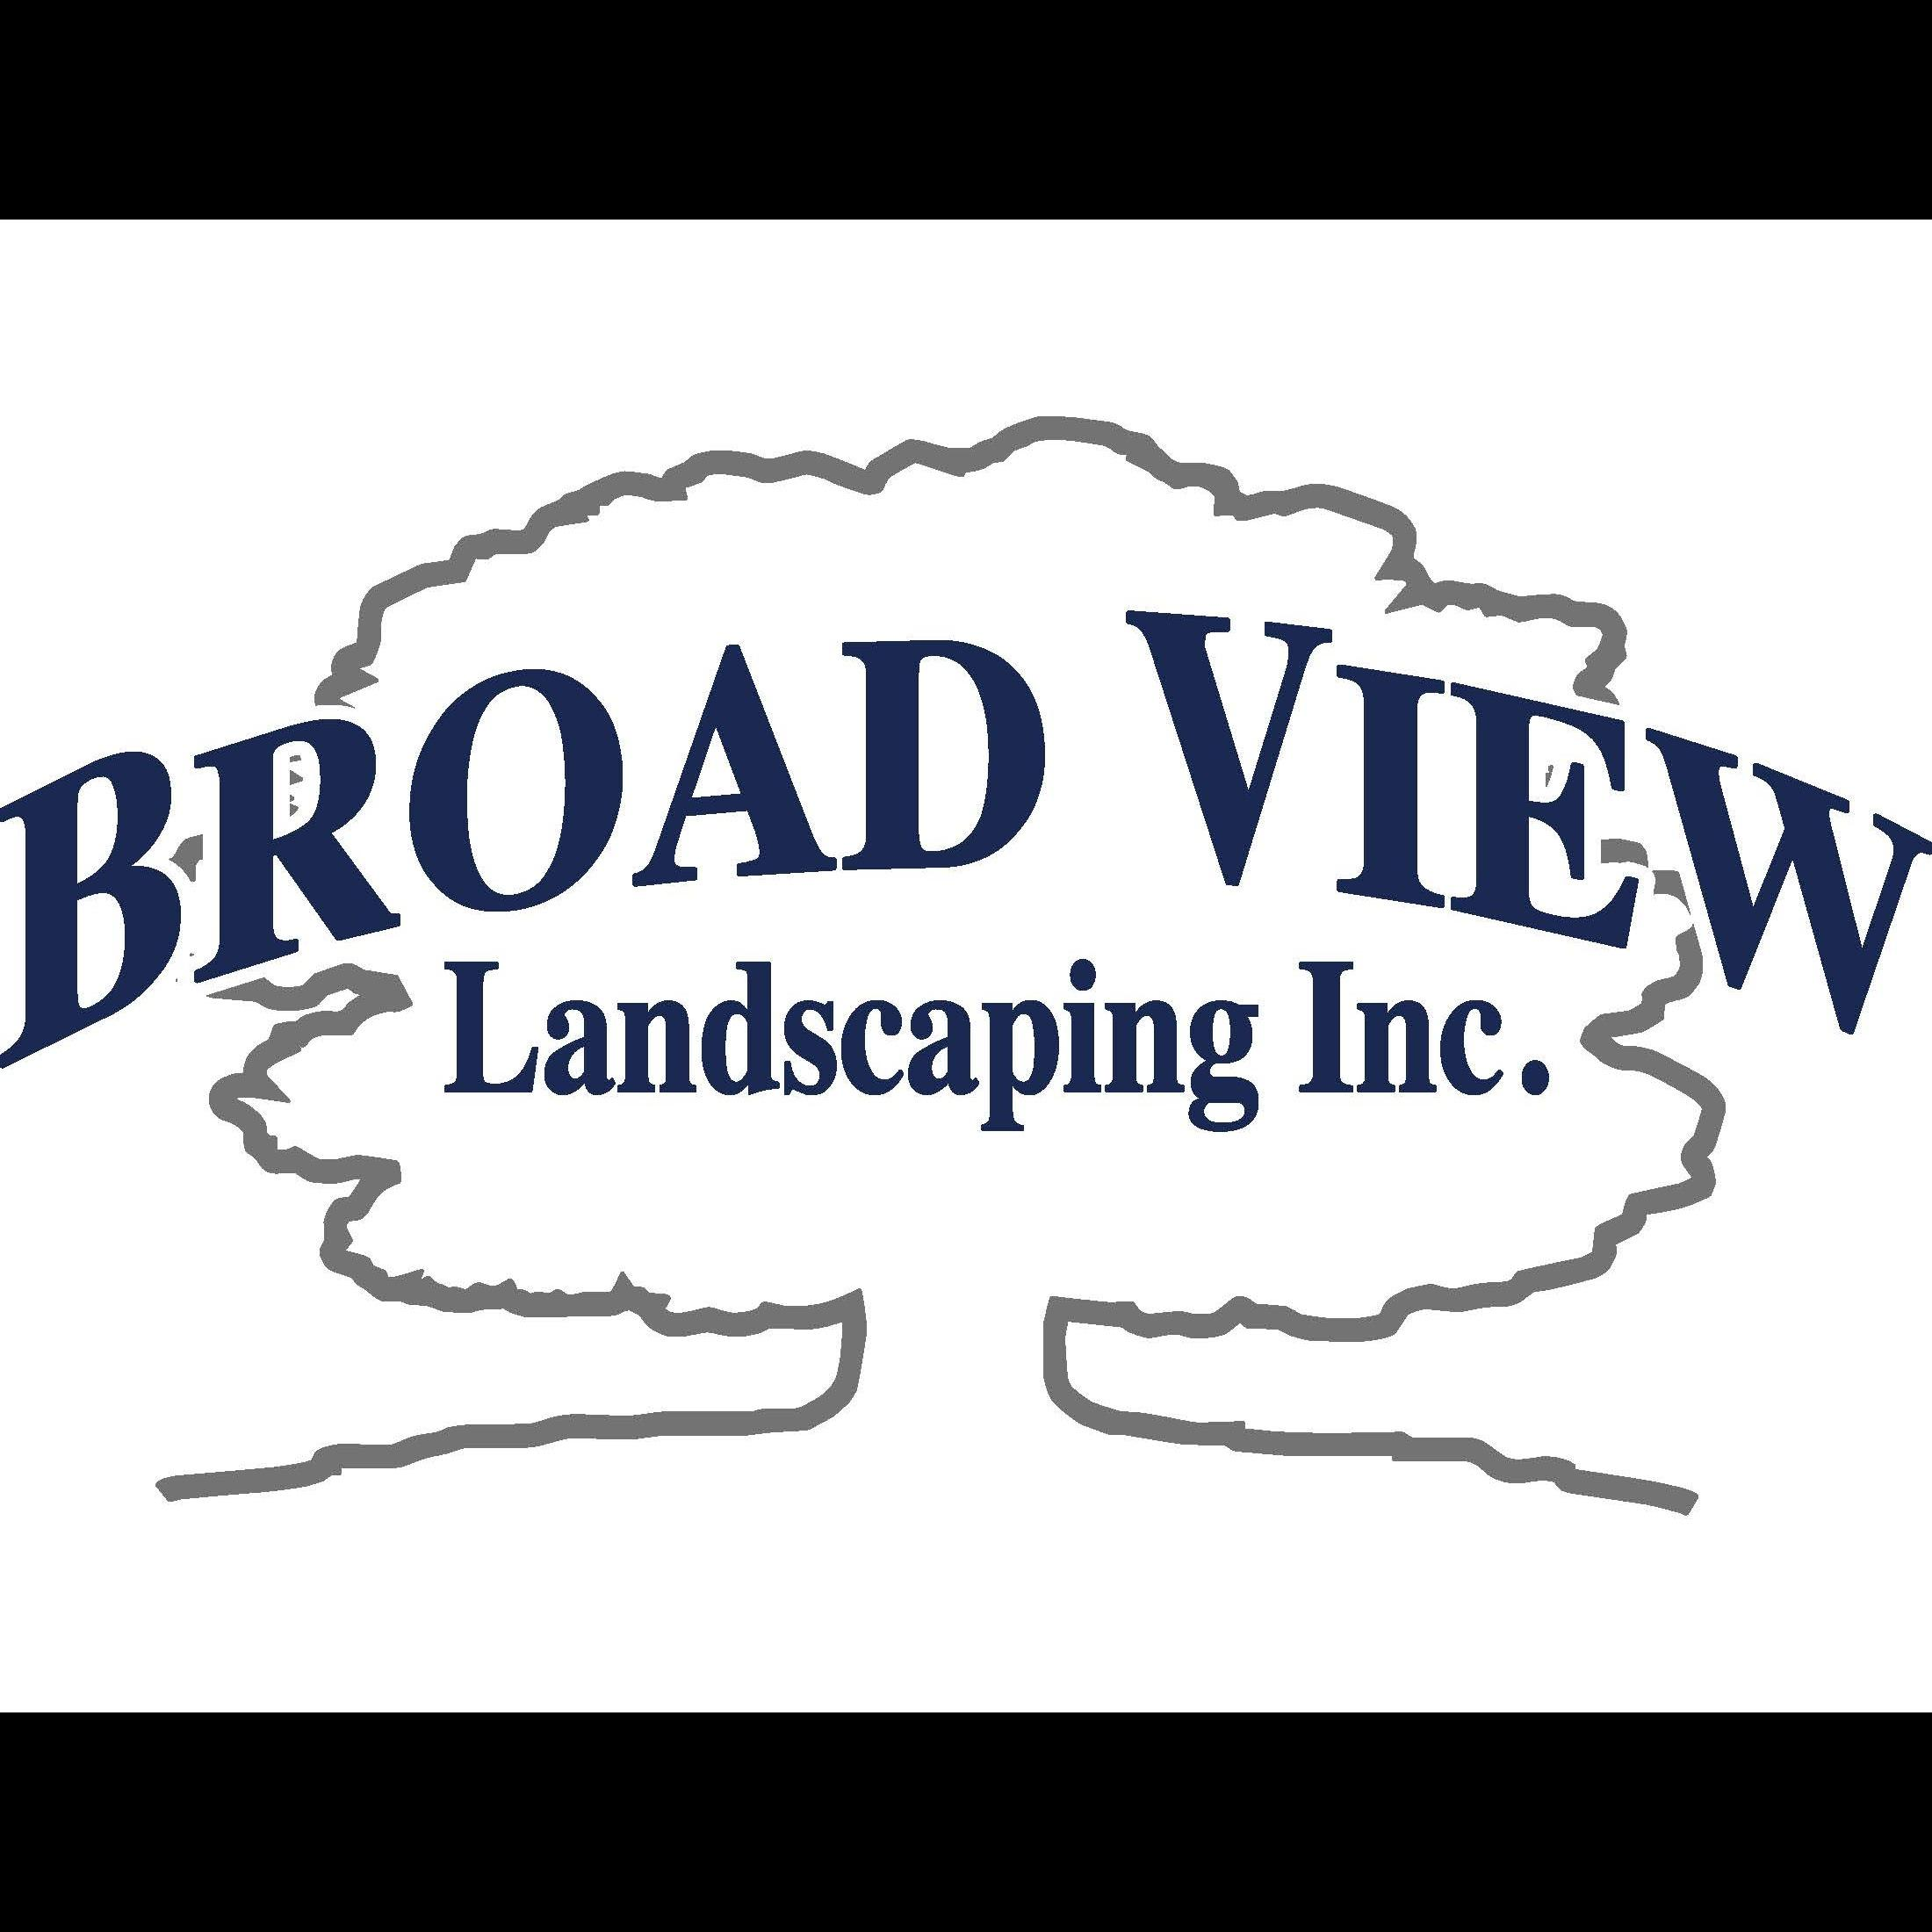 Broad View Landscaping, Inc.